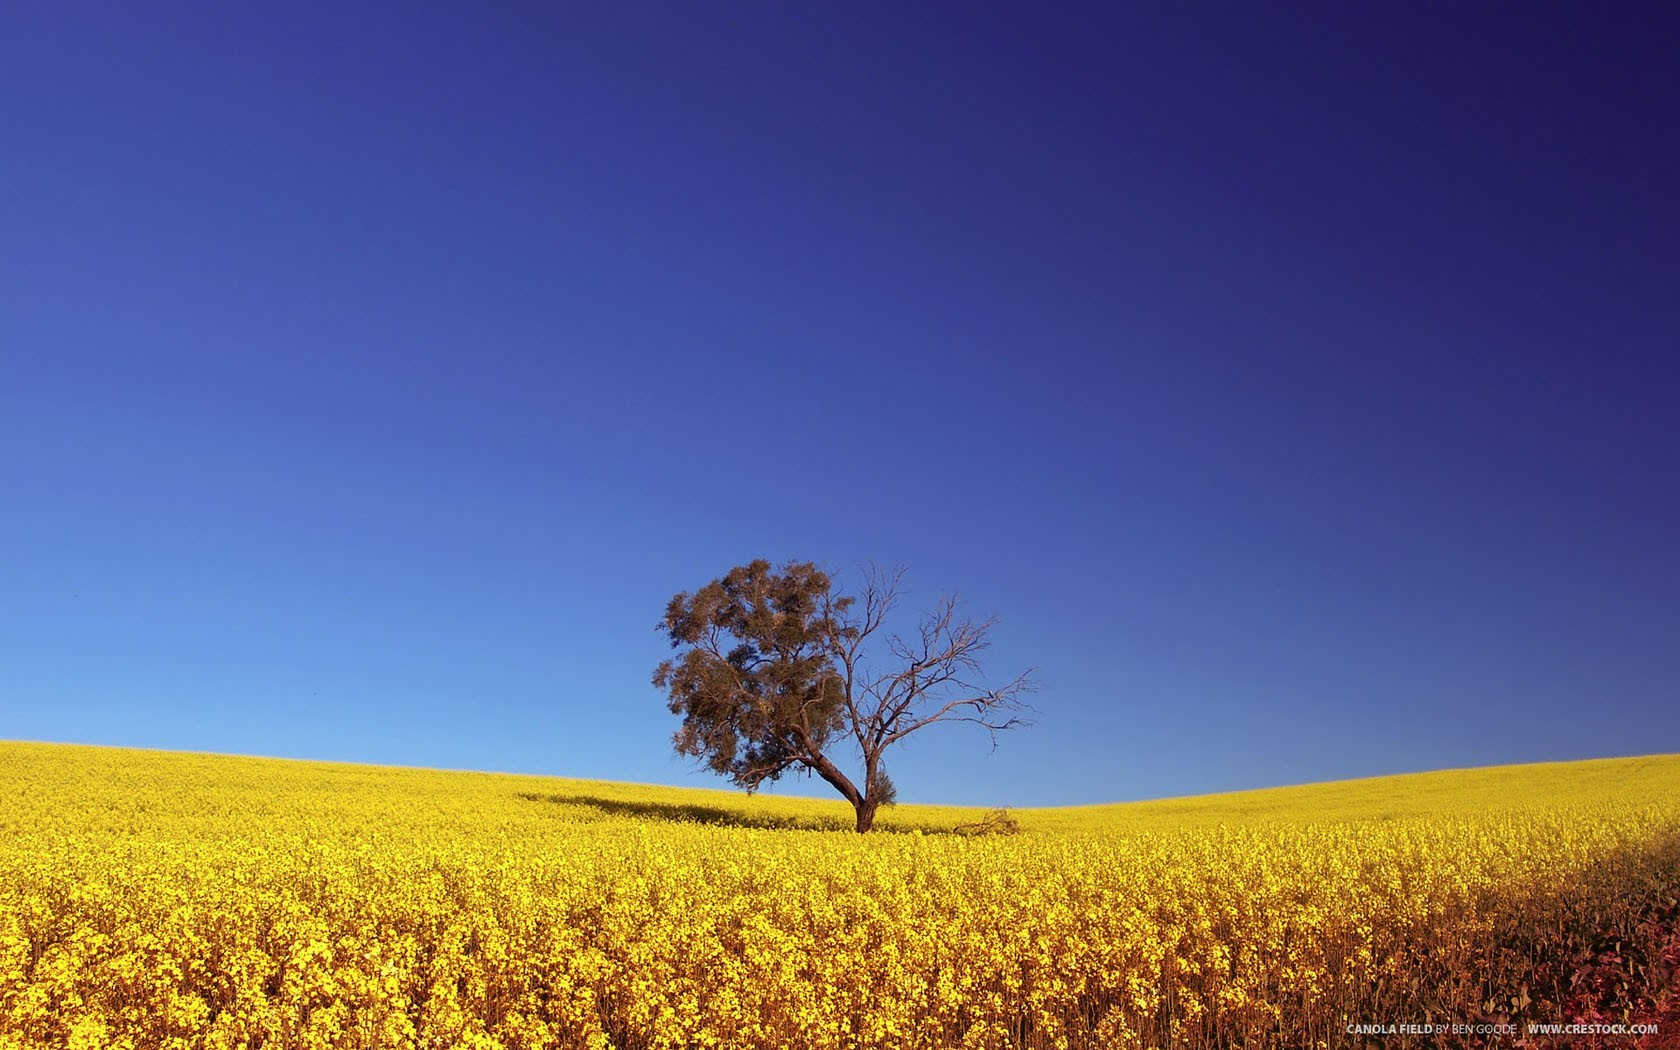 Landscapes Trees meadows fields yellow flowers HD Wallpaper